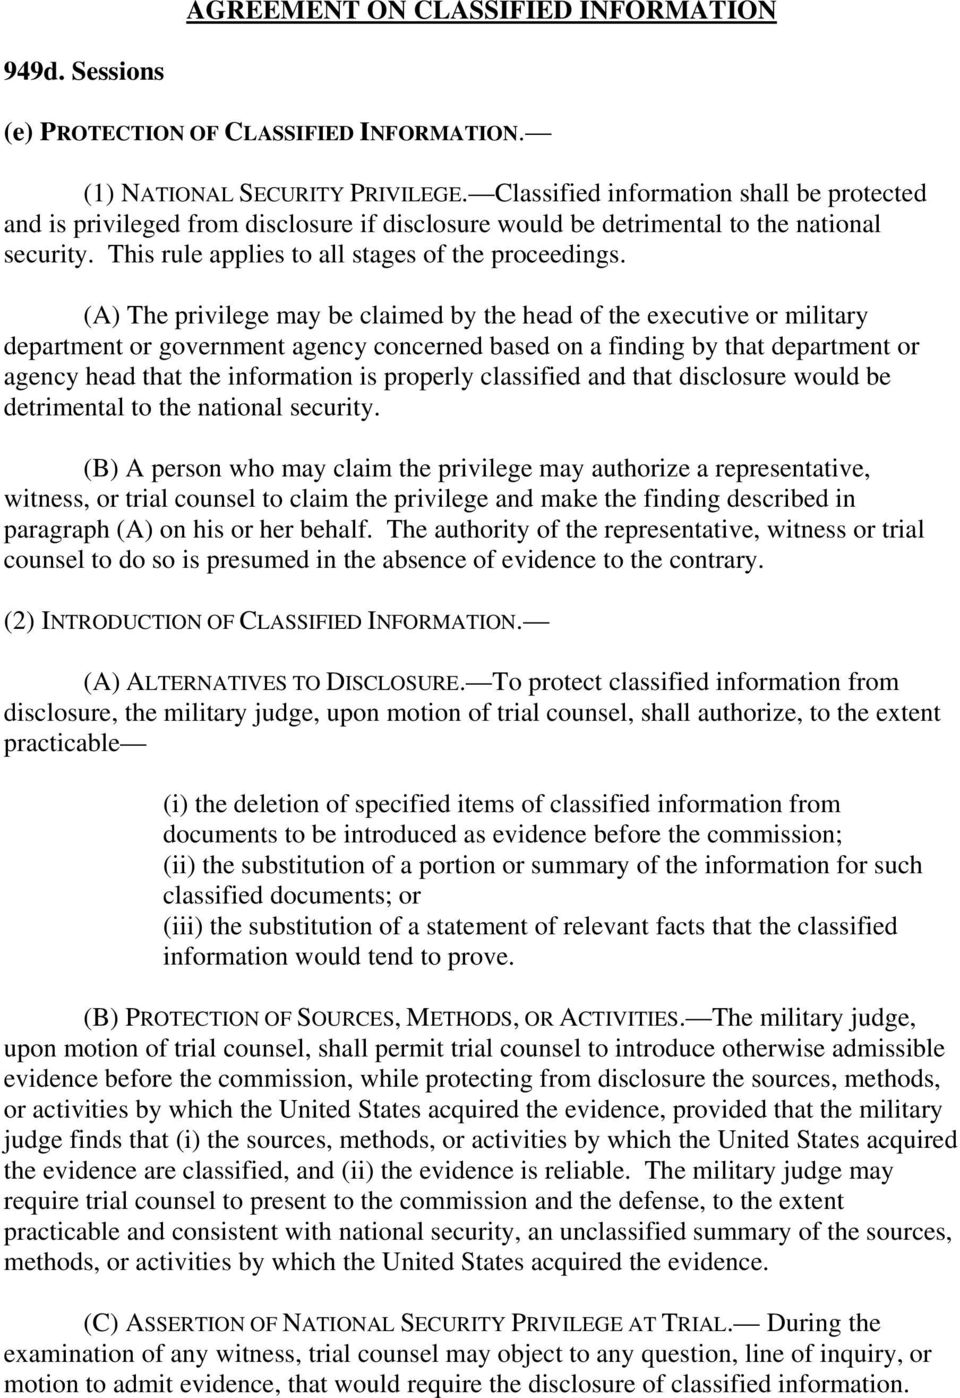 (A) The privilege may be claimed by the head of the executive or military department or government agency concerned based on a finding by that department or agency head that the information is